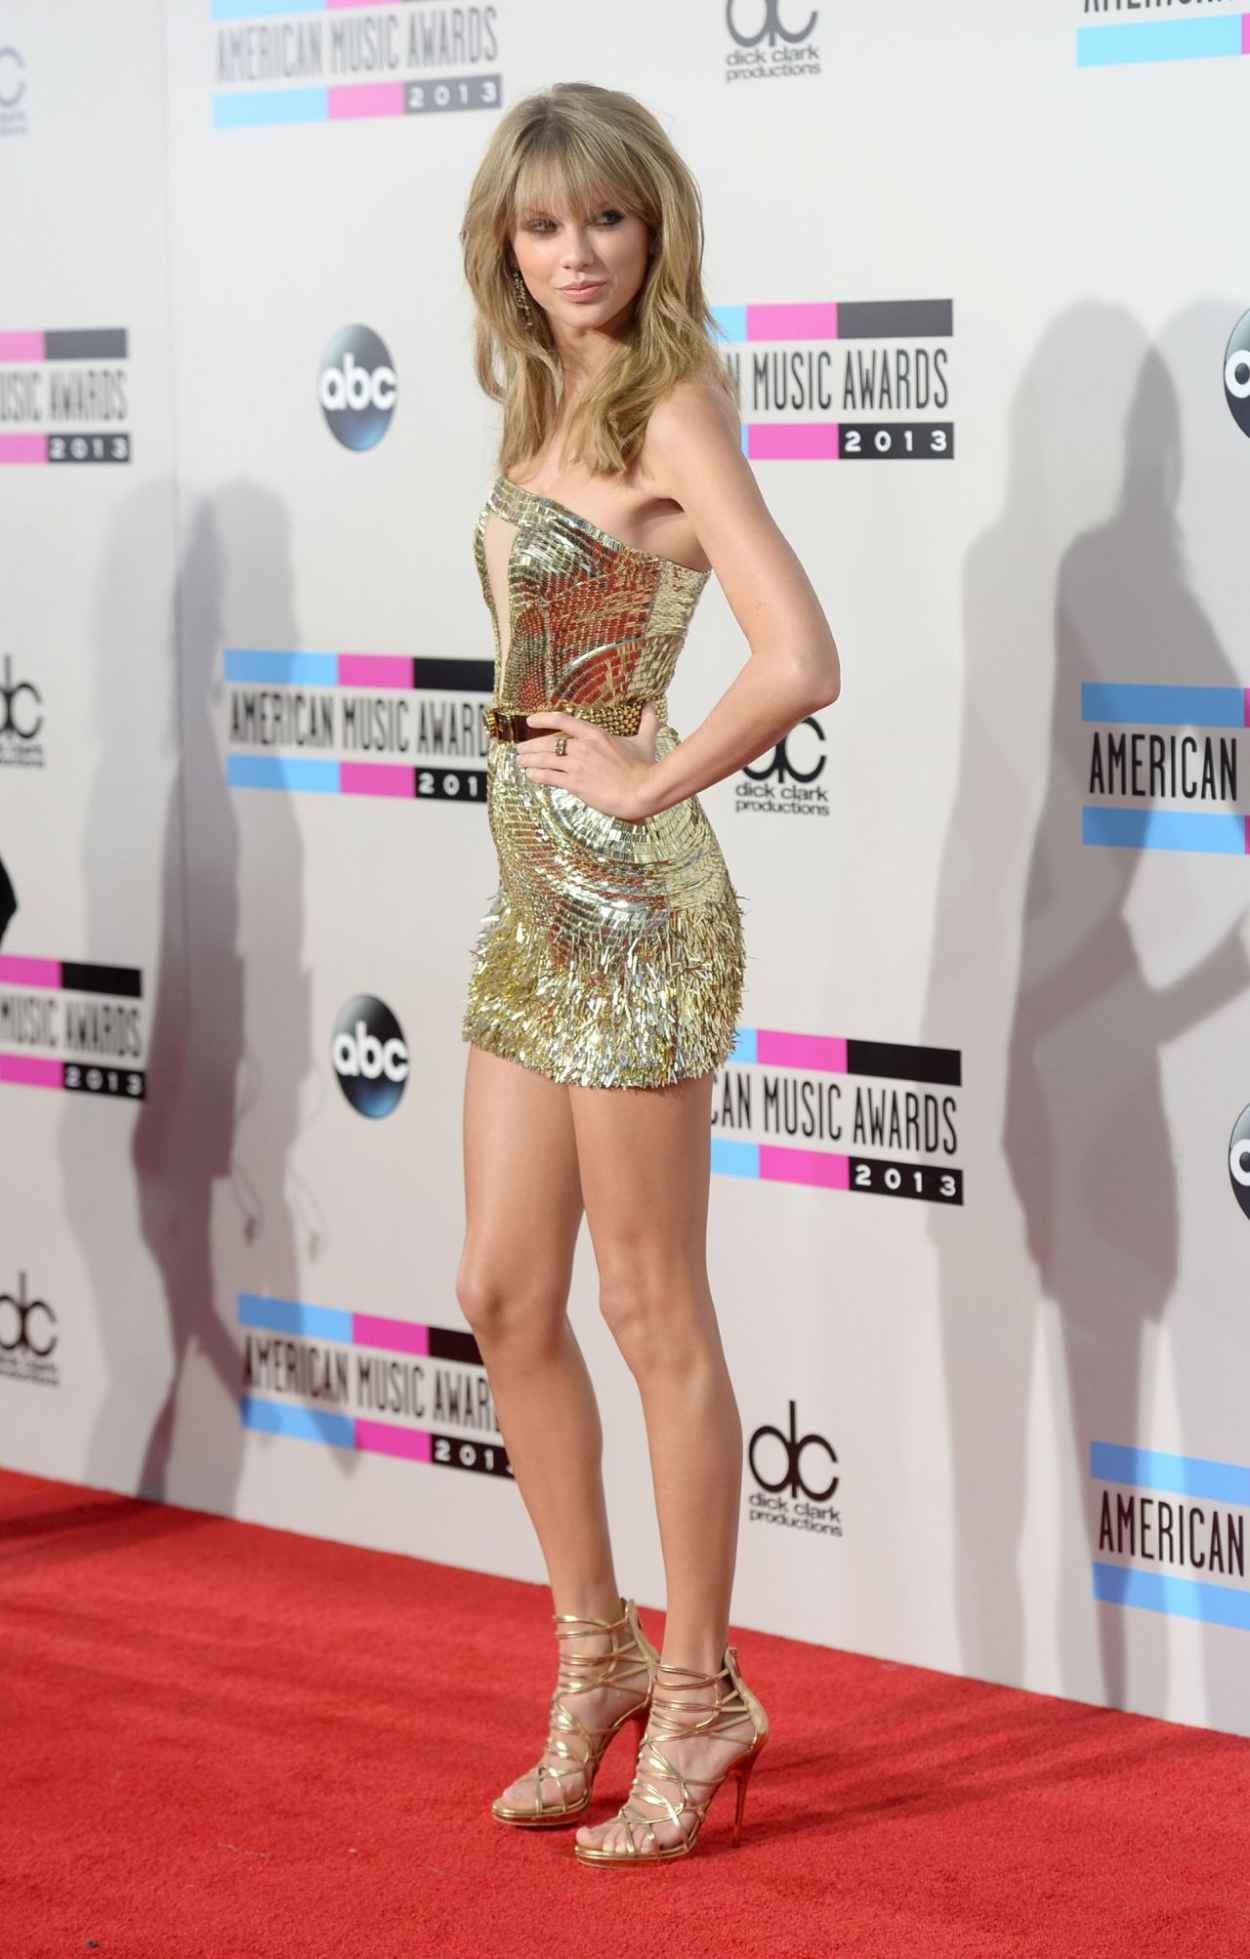 Taylor Swift Looks Hot on Red Carpet - 2015 American Music Awards in Los Angeles-1